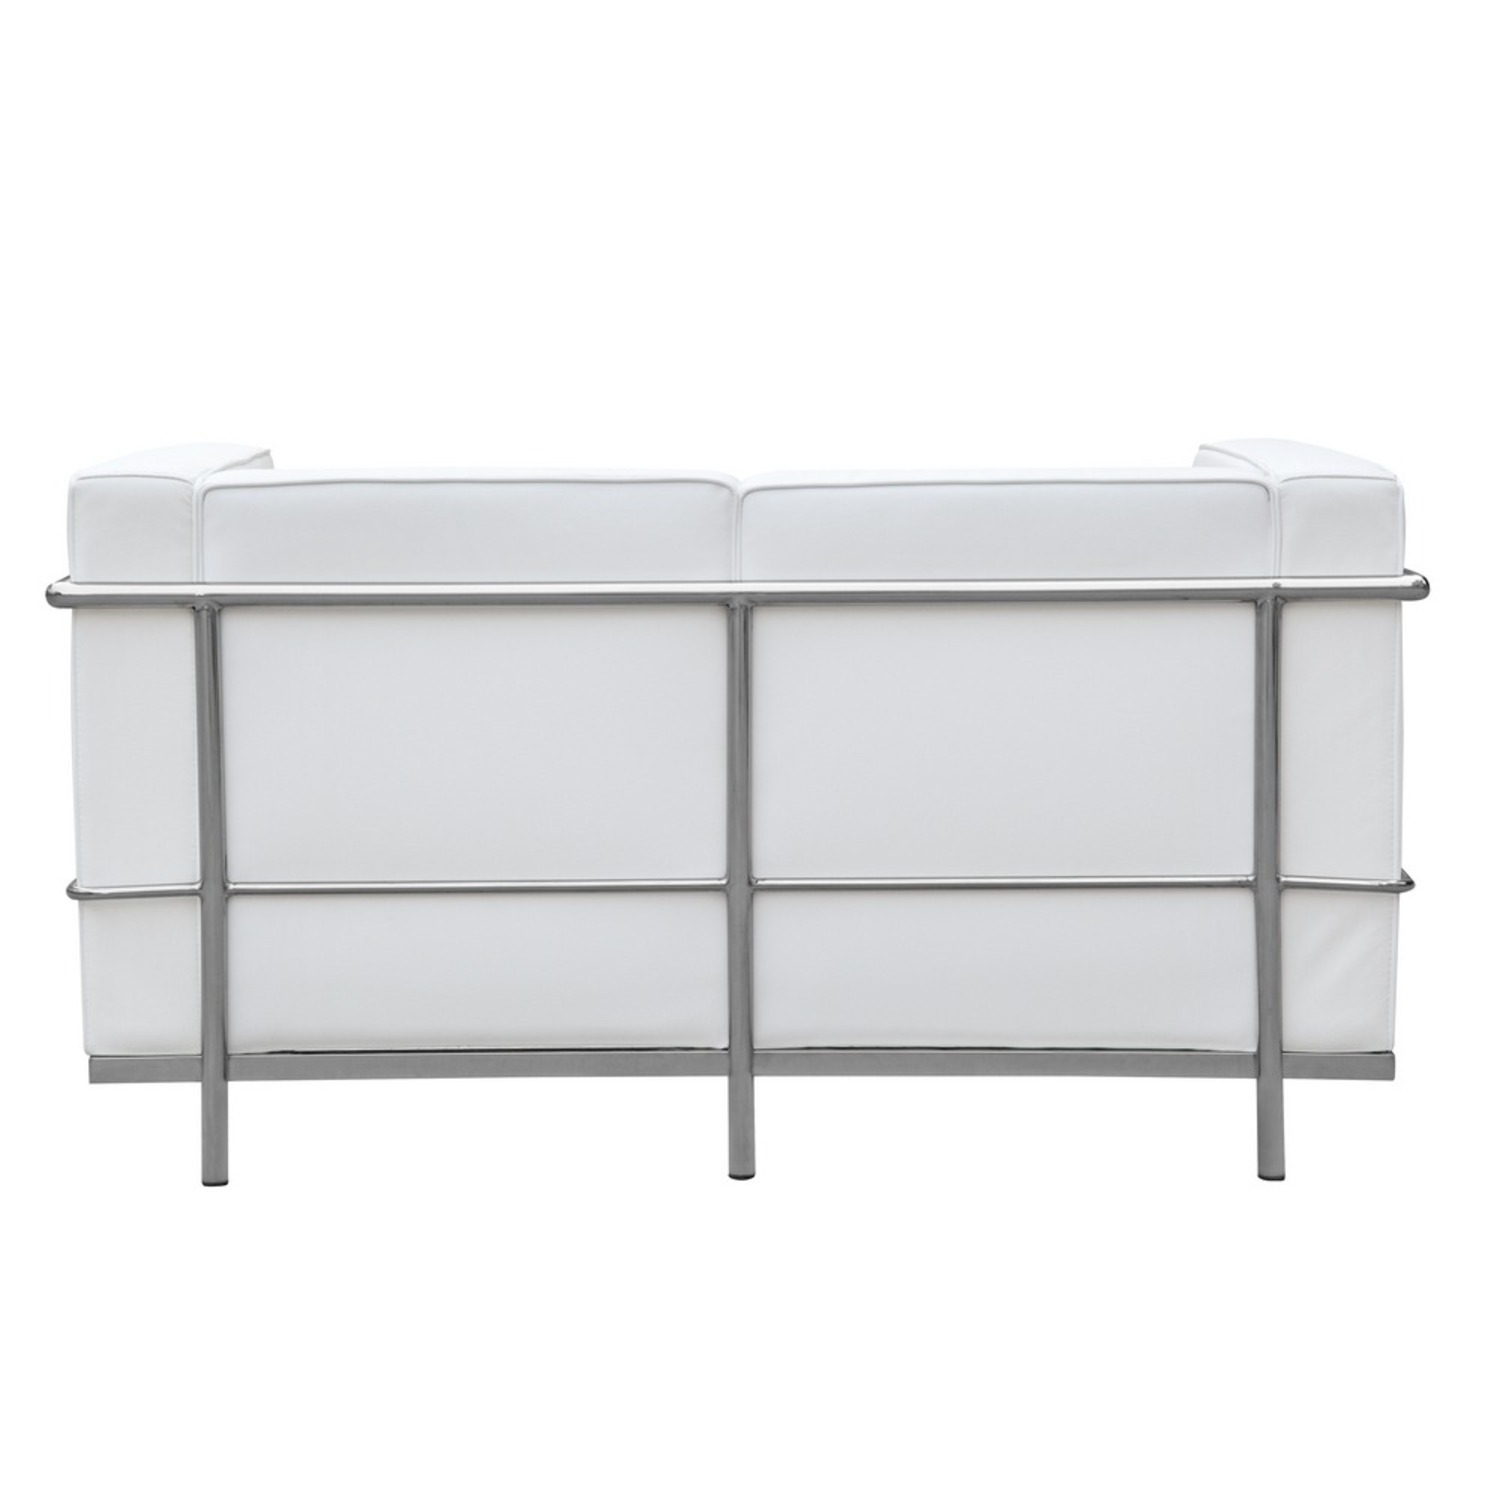 Loveseat In White Leather W/ Stainless Steel Frame - image-2